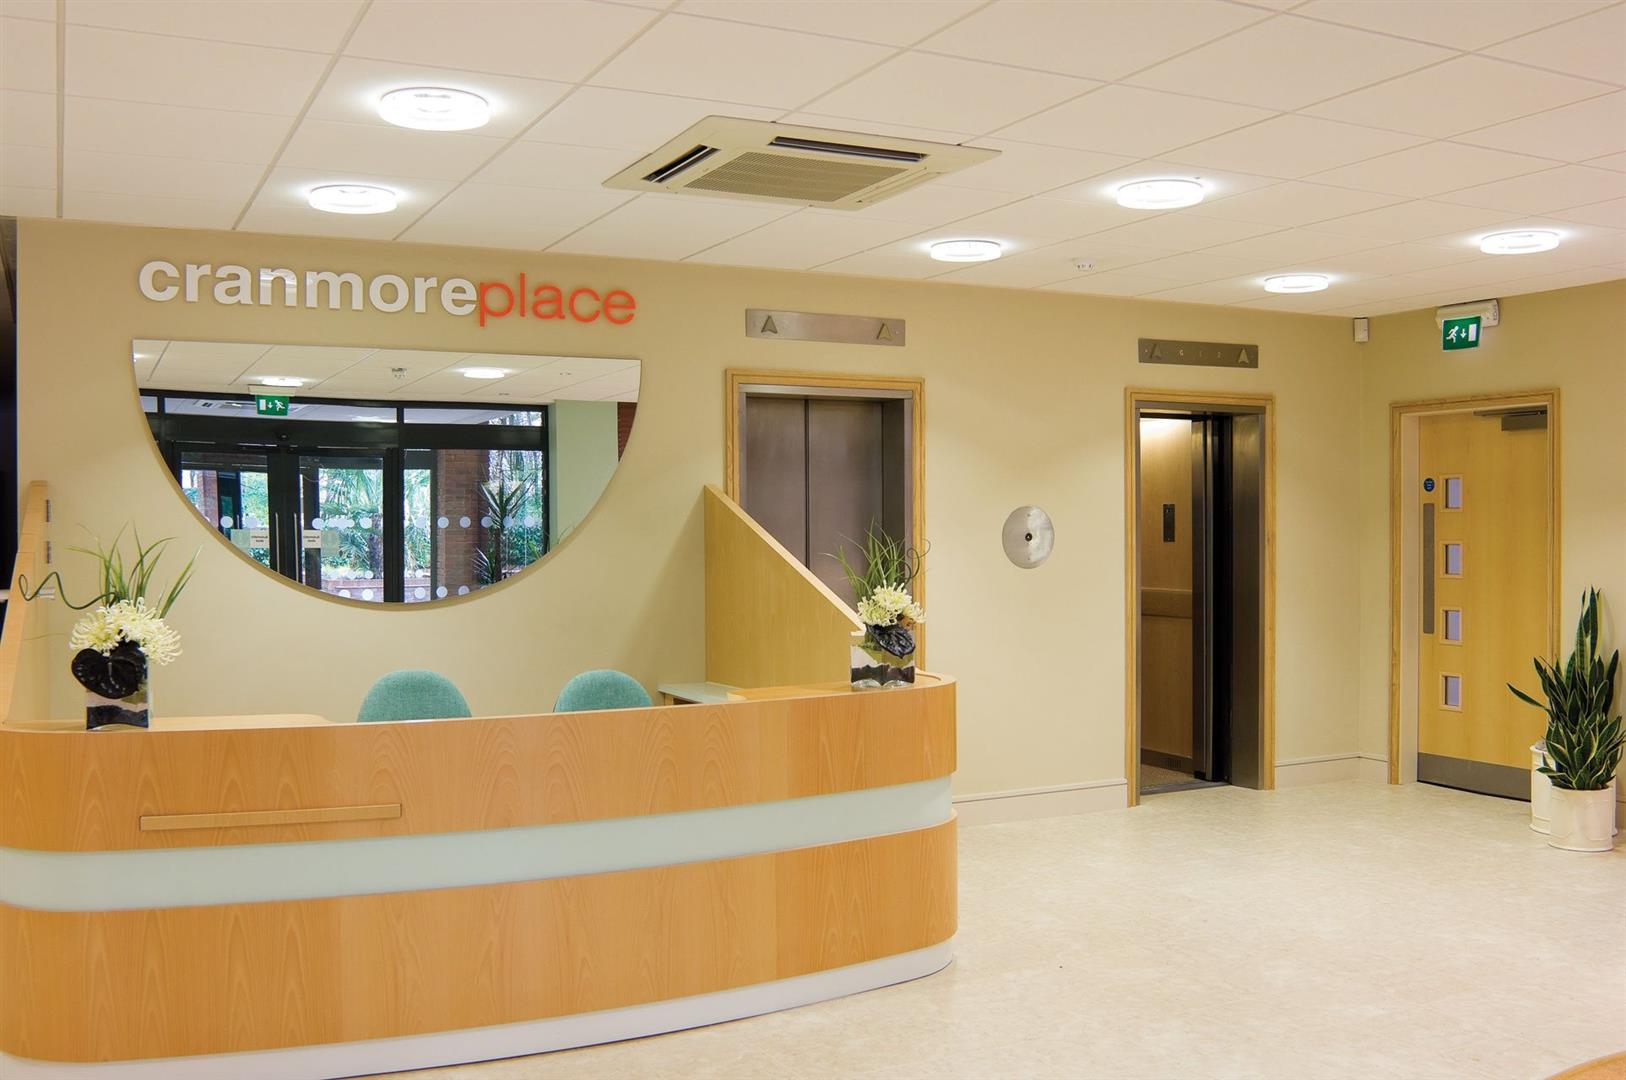 Cranmore Place reception